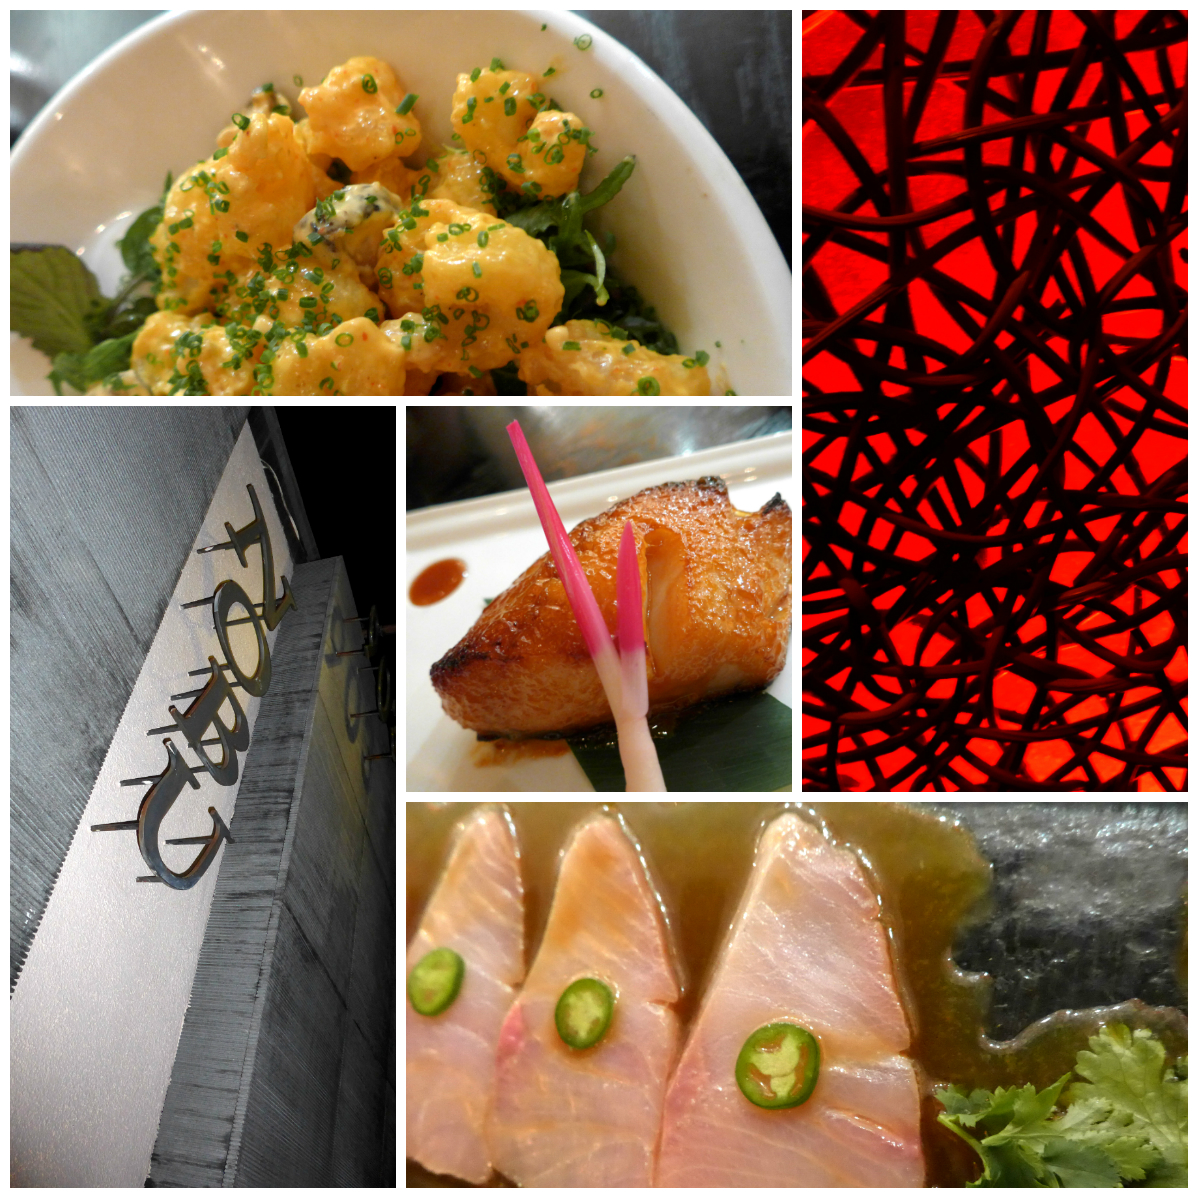 Signature dishes from Nobu Los Angeles